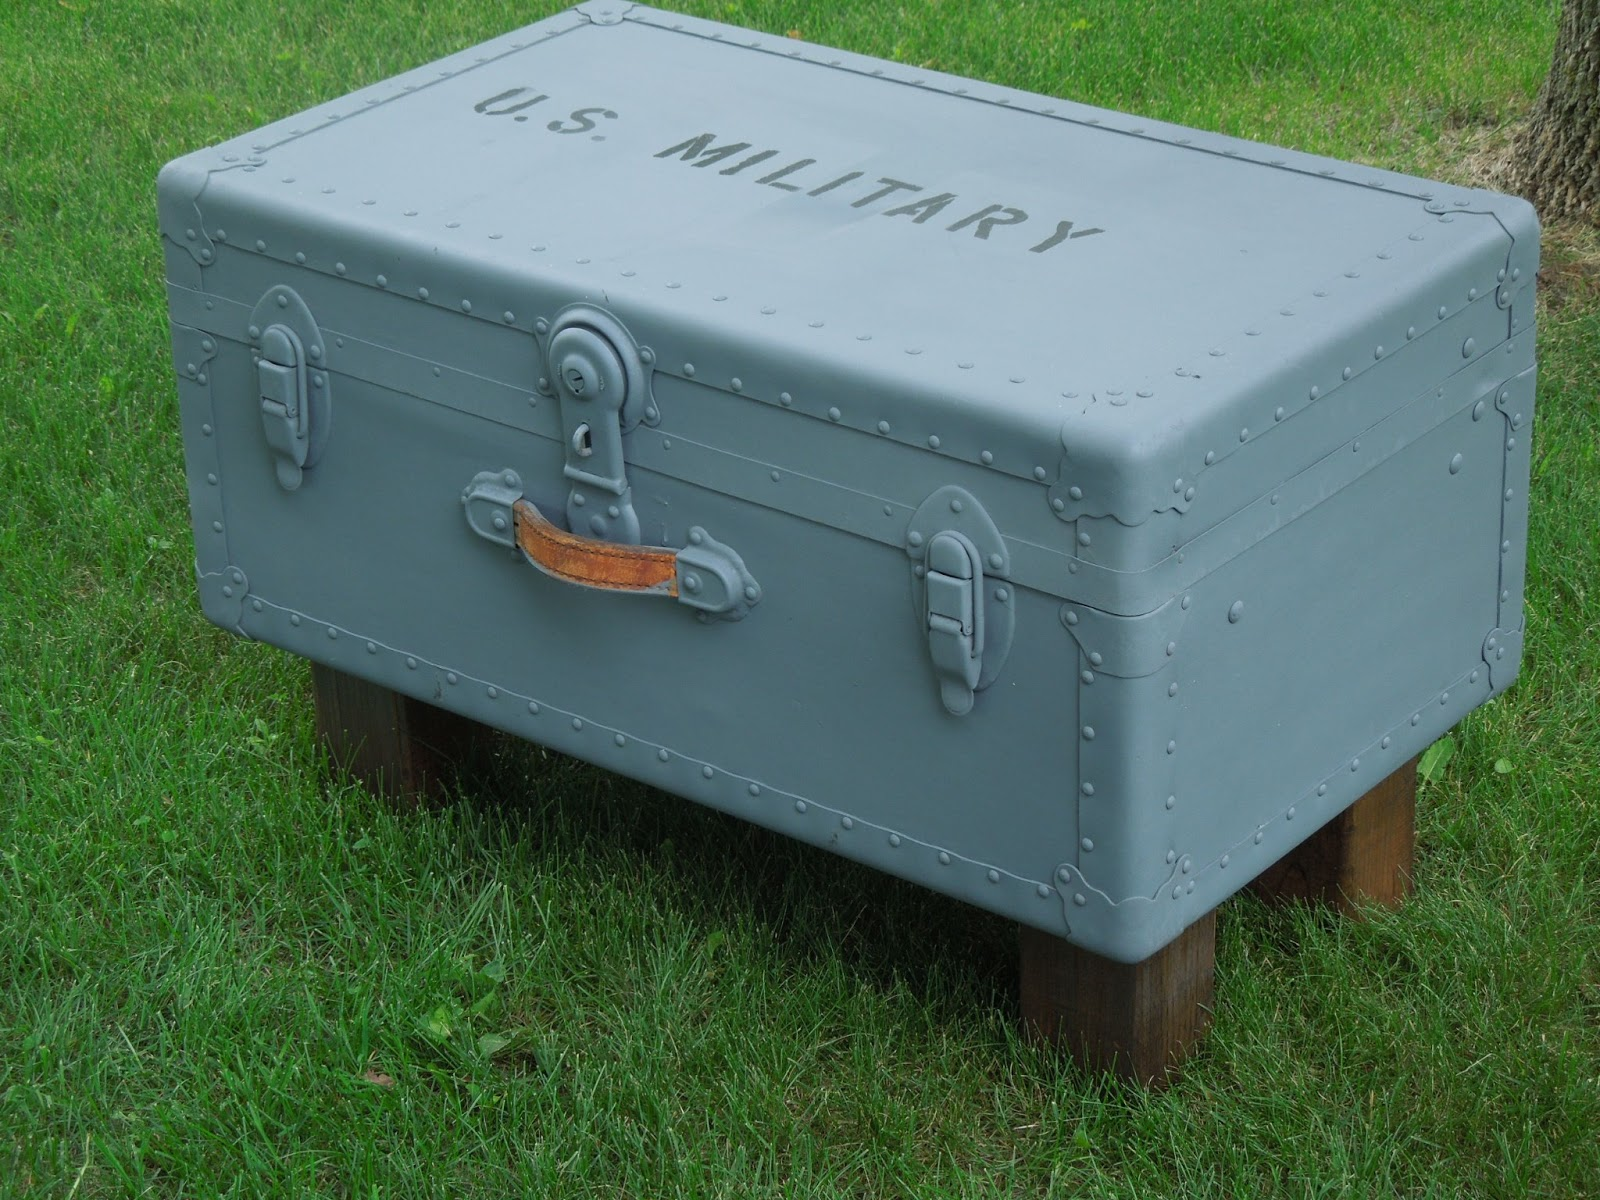 This Is NOT A Military Trunk, Just Repurposed. It Does Open For Storage.  The Handle Is Missing On One Side.